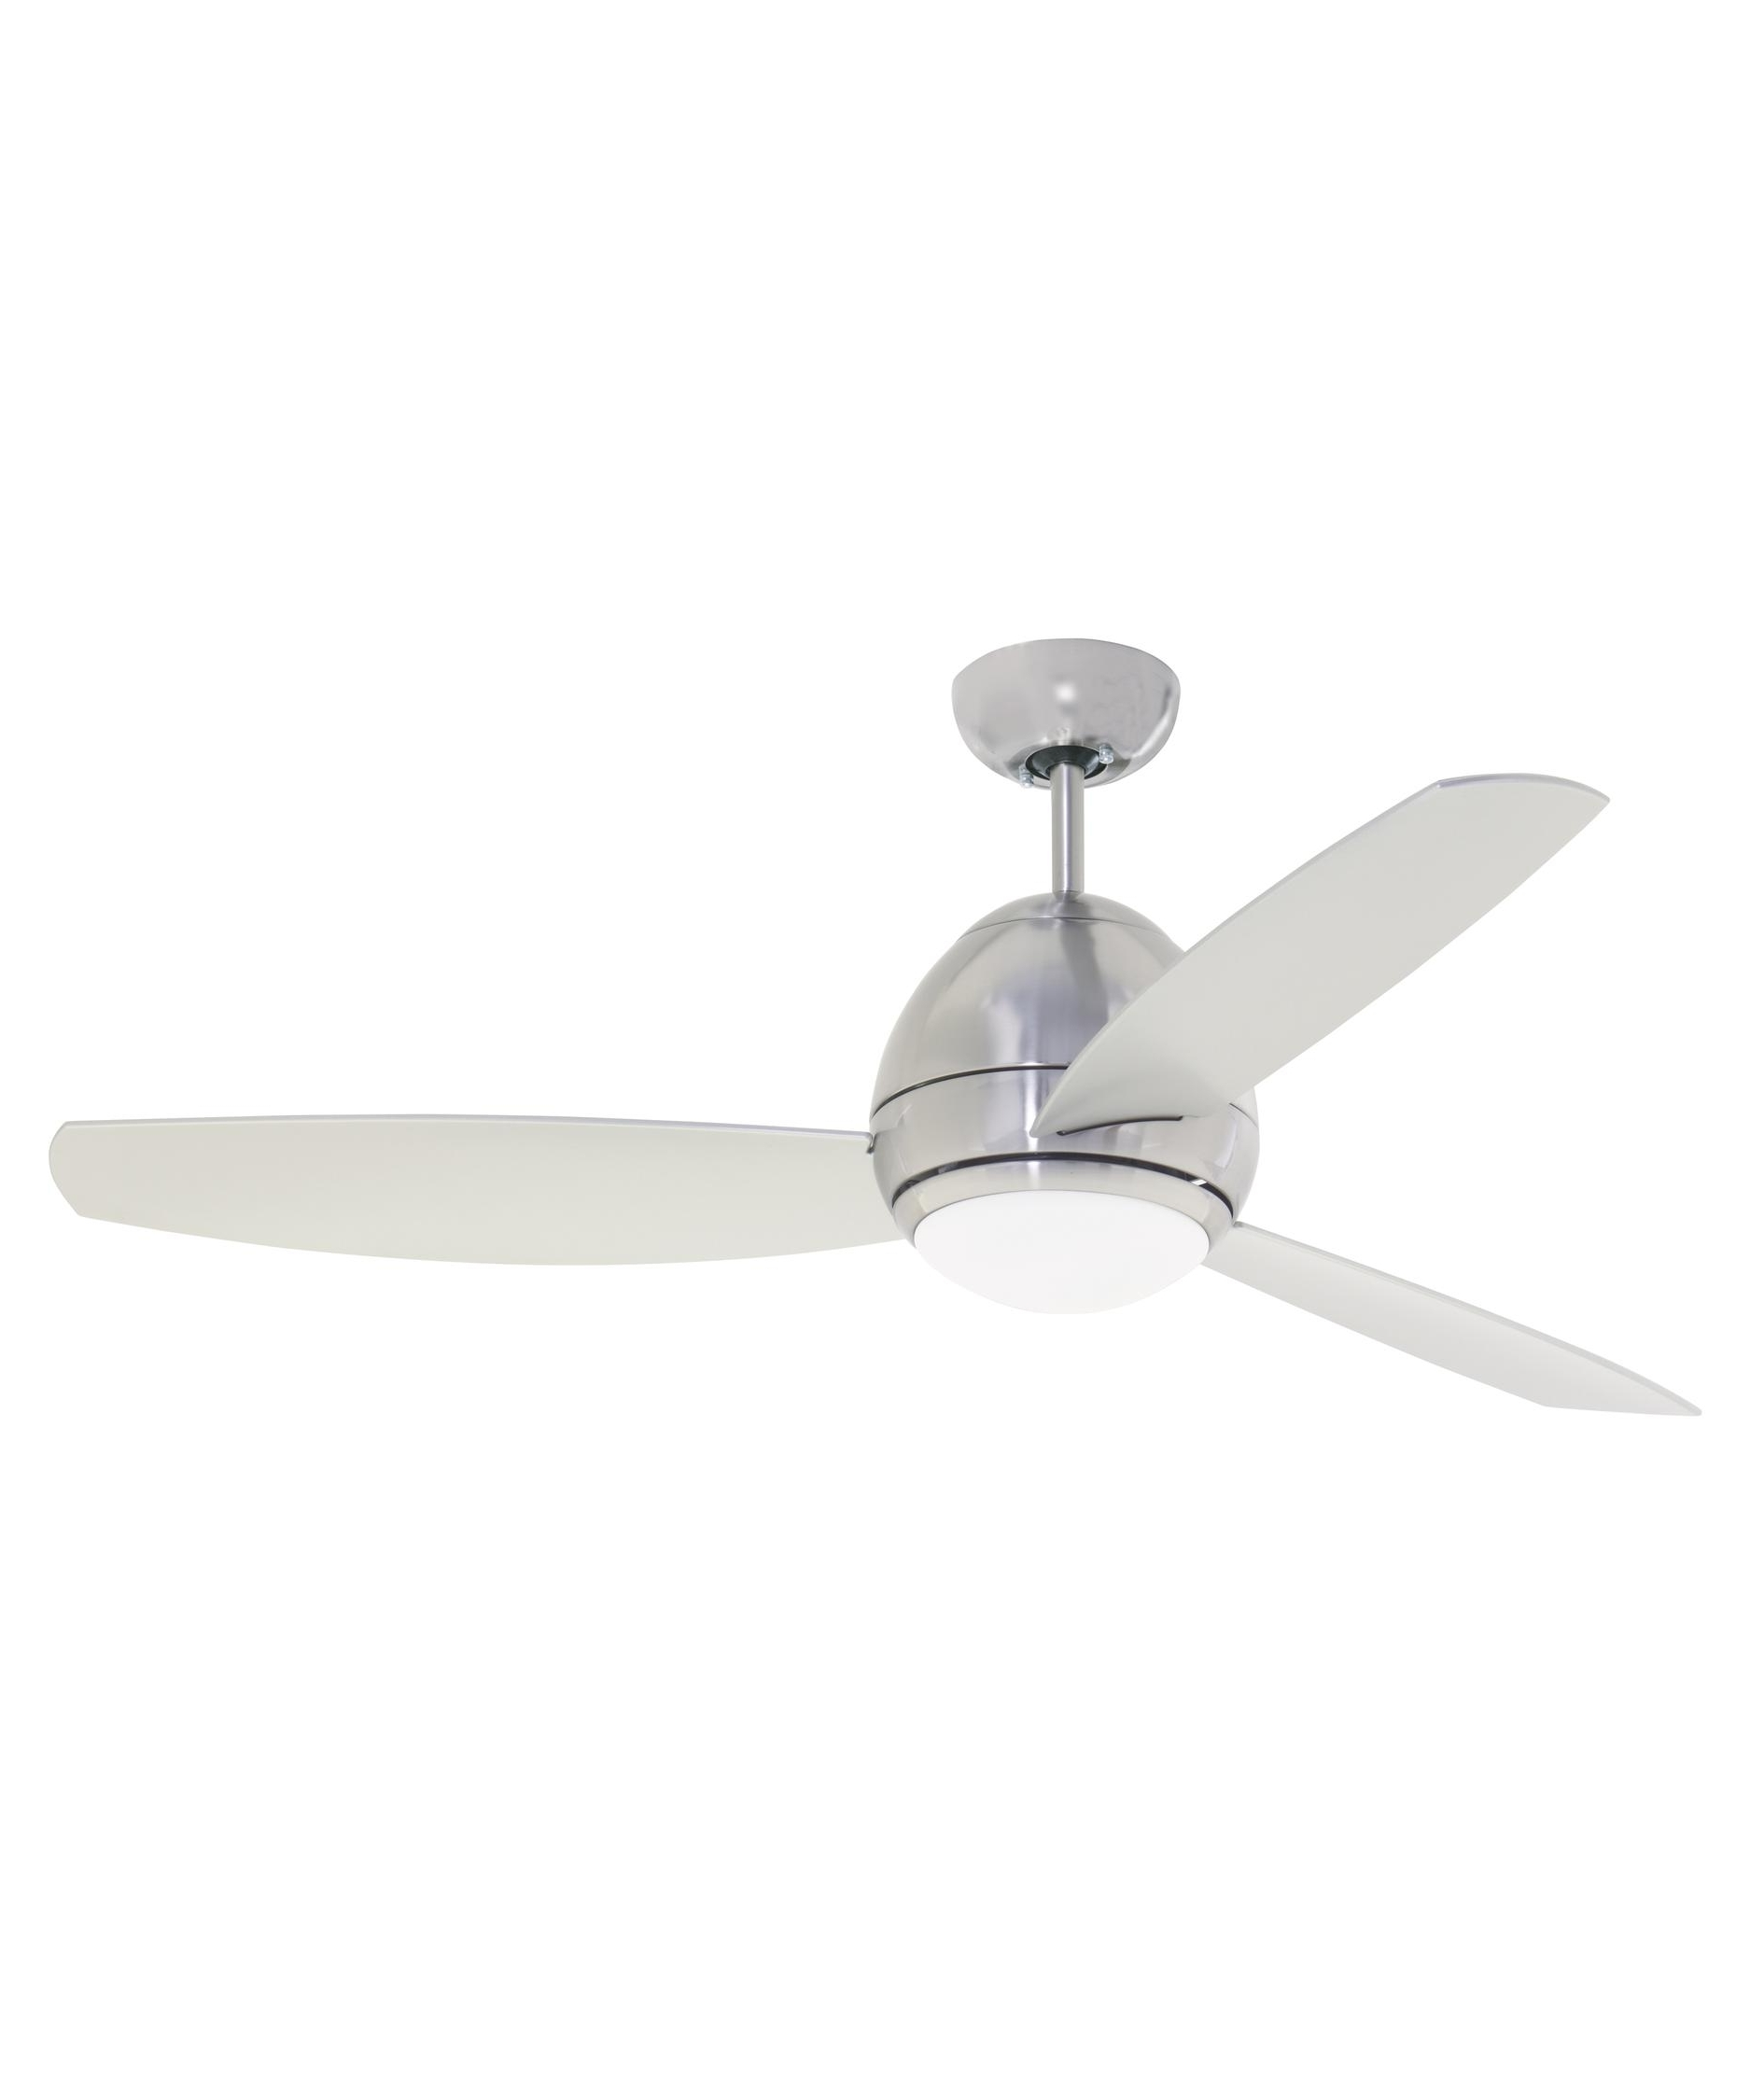 Widely Used Emerson Outdoor Ceiling Fans With Lights With Emerson Cf252 Curva 52 Inch 3 Blade Ceiling Fan (View 20 of 20)